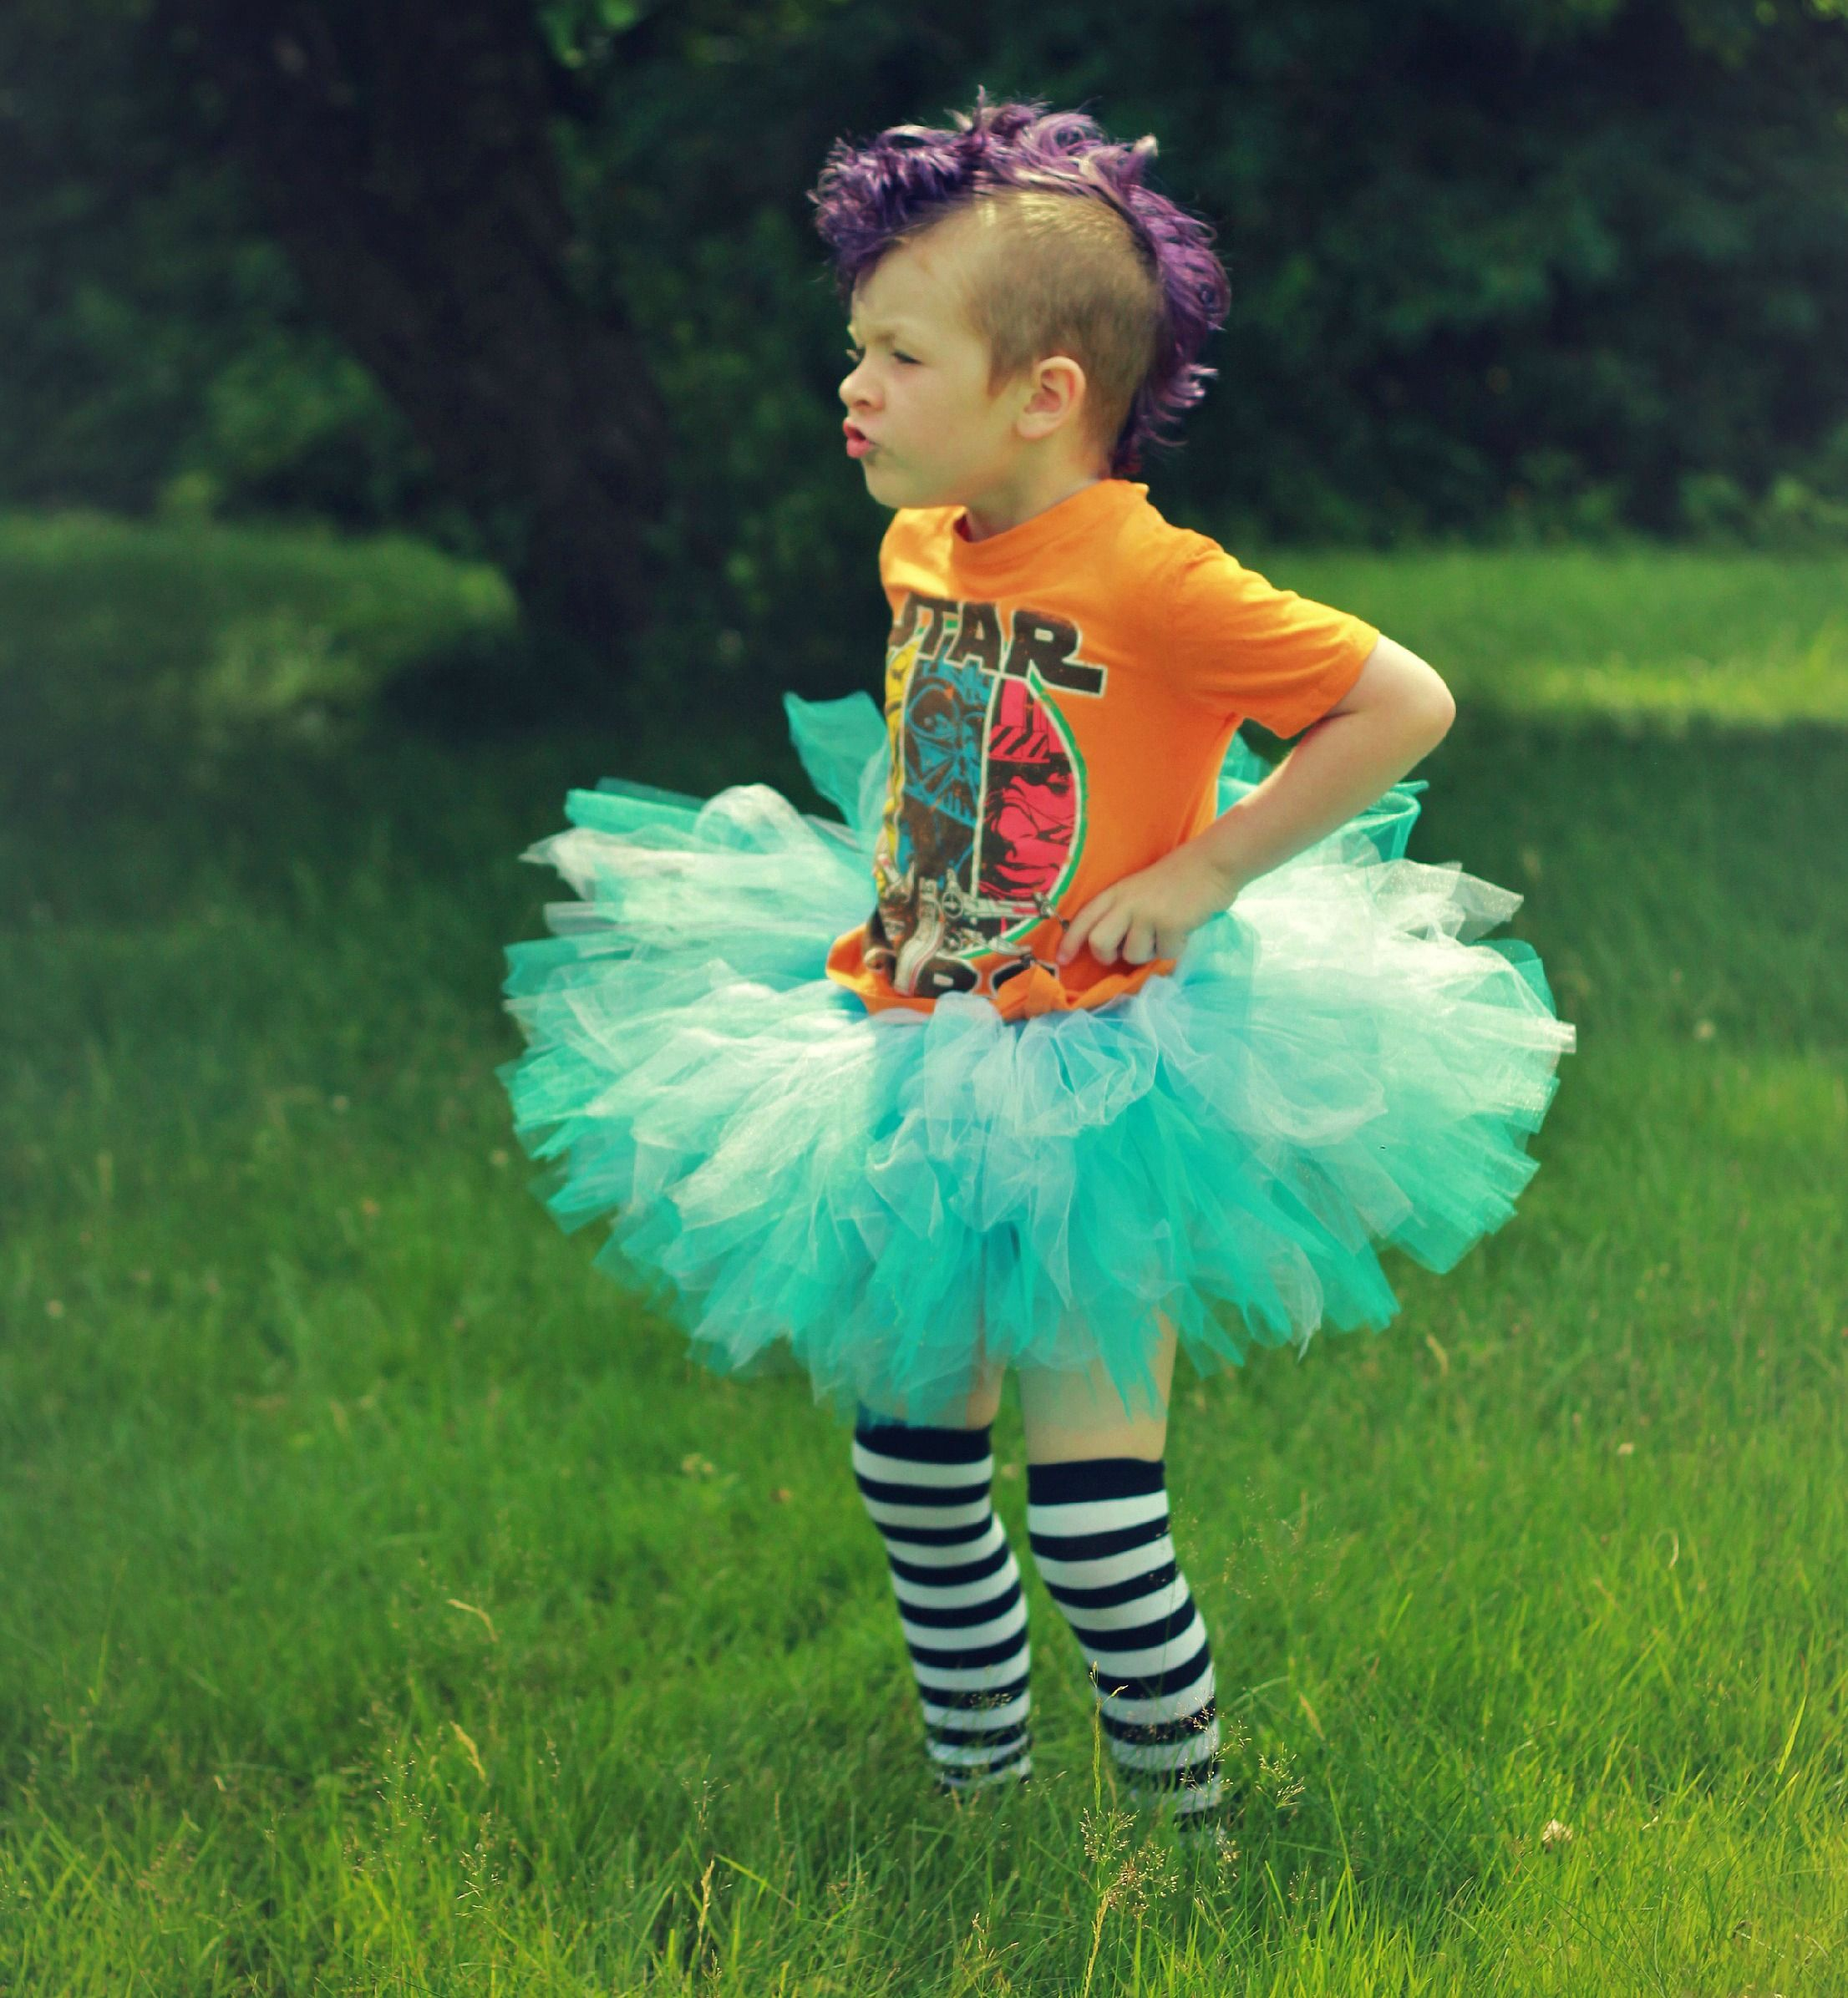 Mom Lets Her Son Pick His Own Outfit, And The Results Are